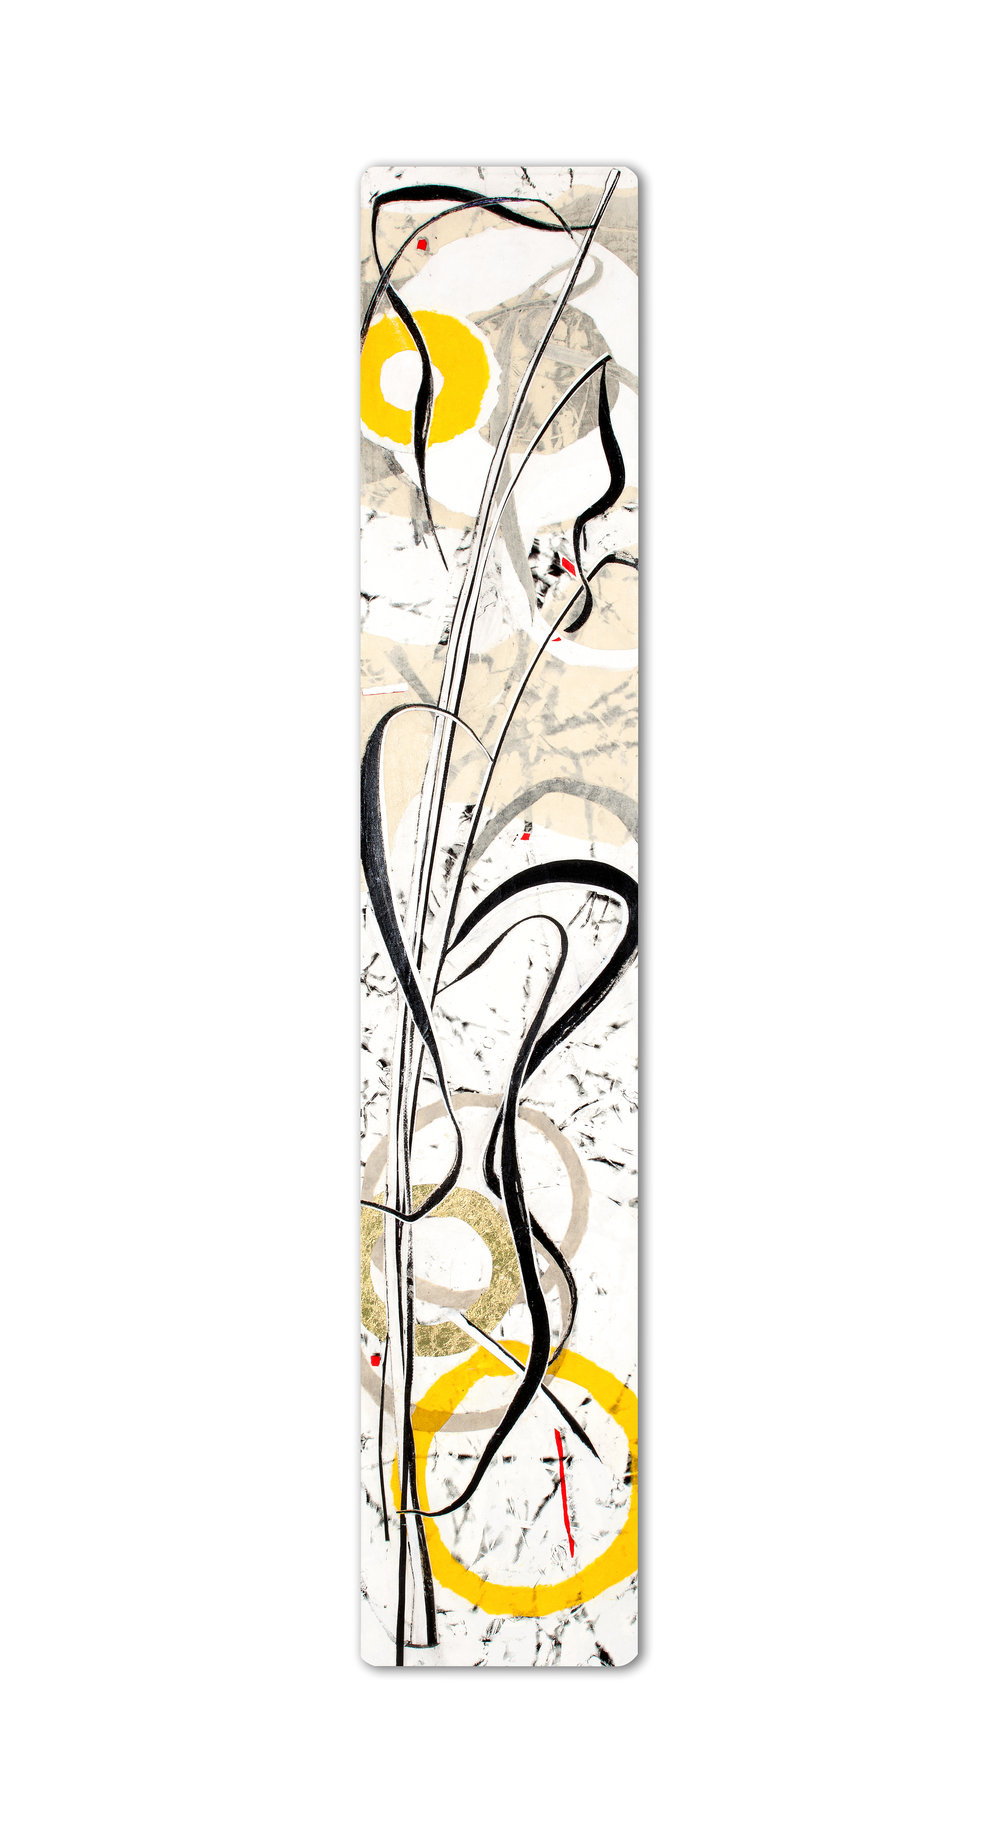 Grasses Renewed_54x10x3_Mixed Media_2011_panel4.jpg